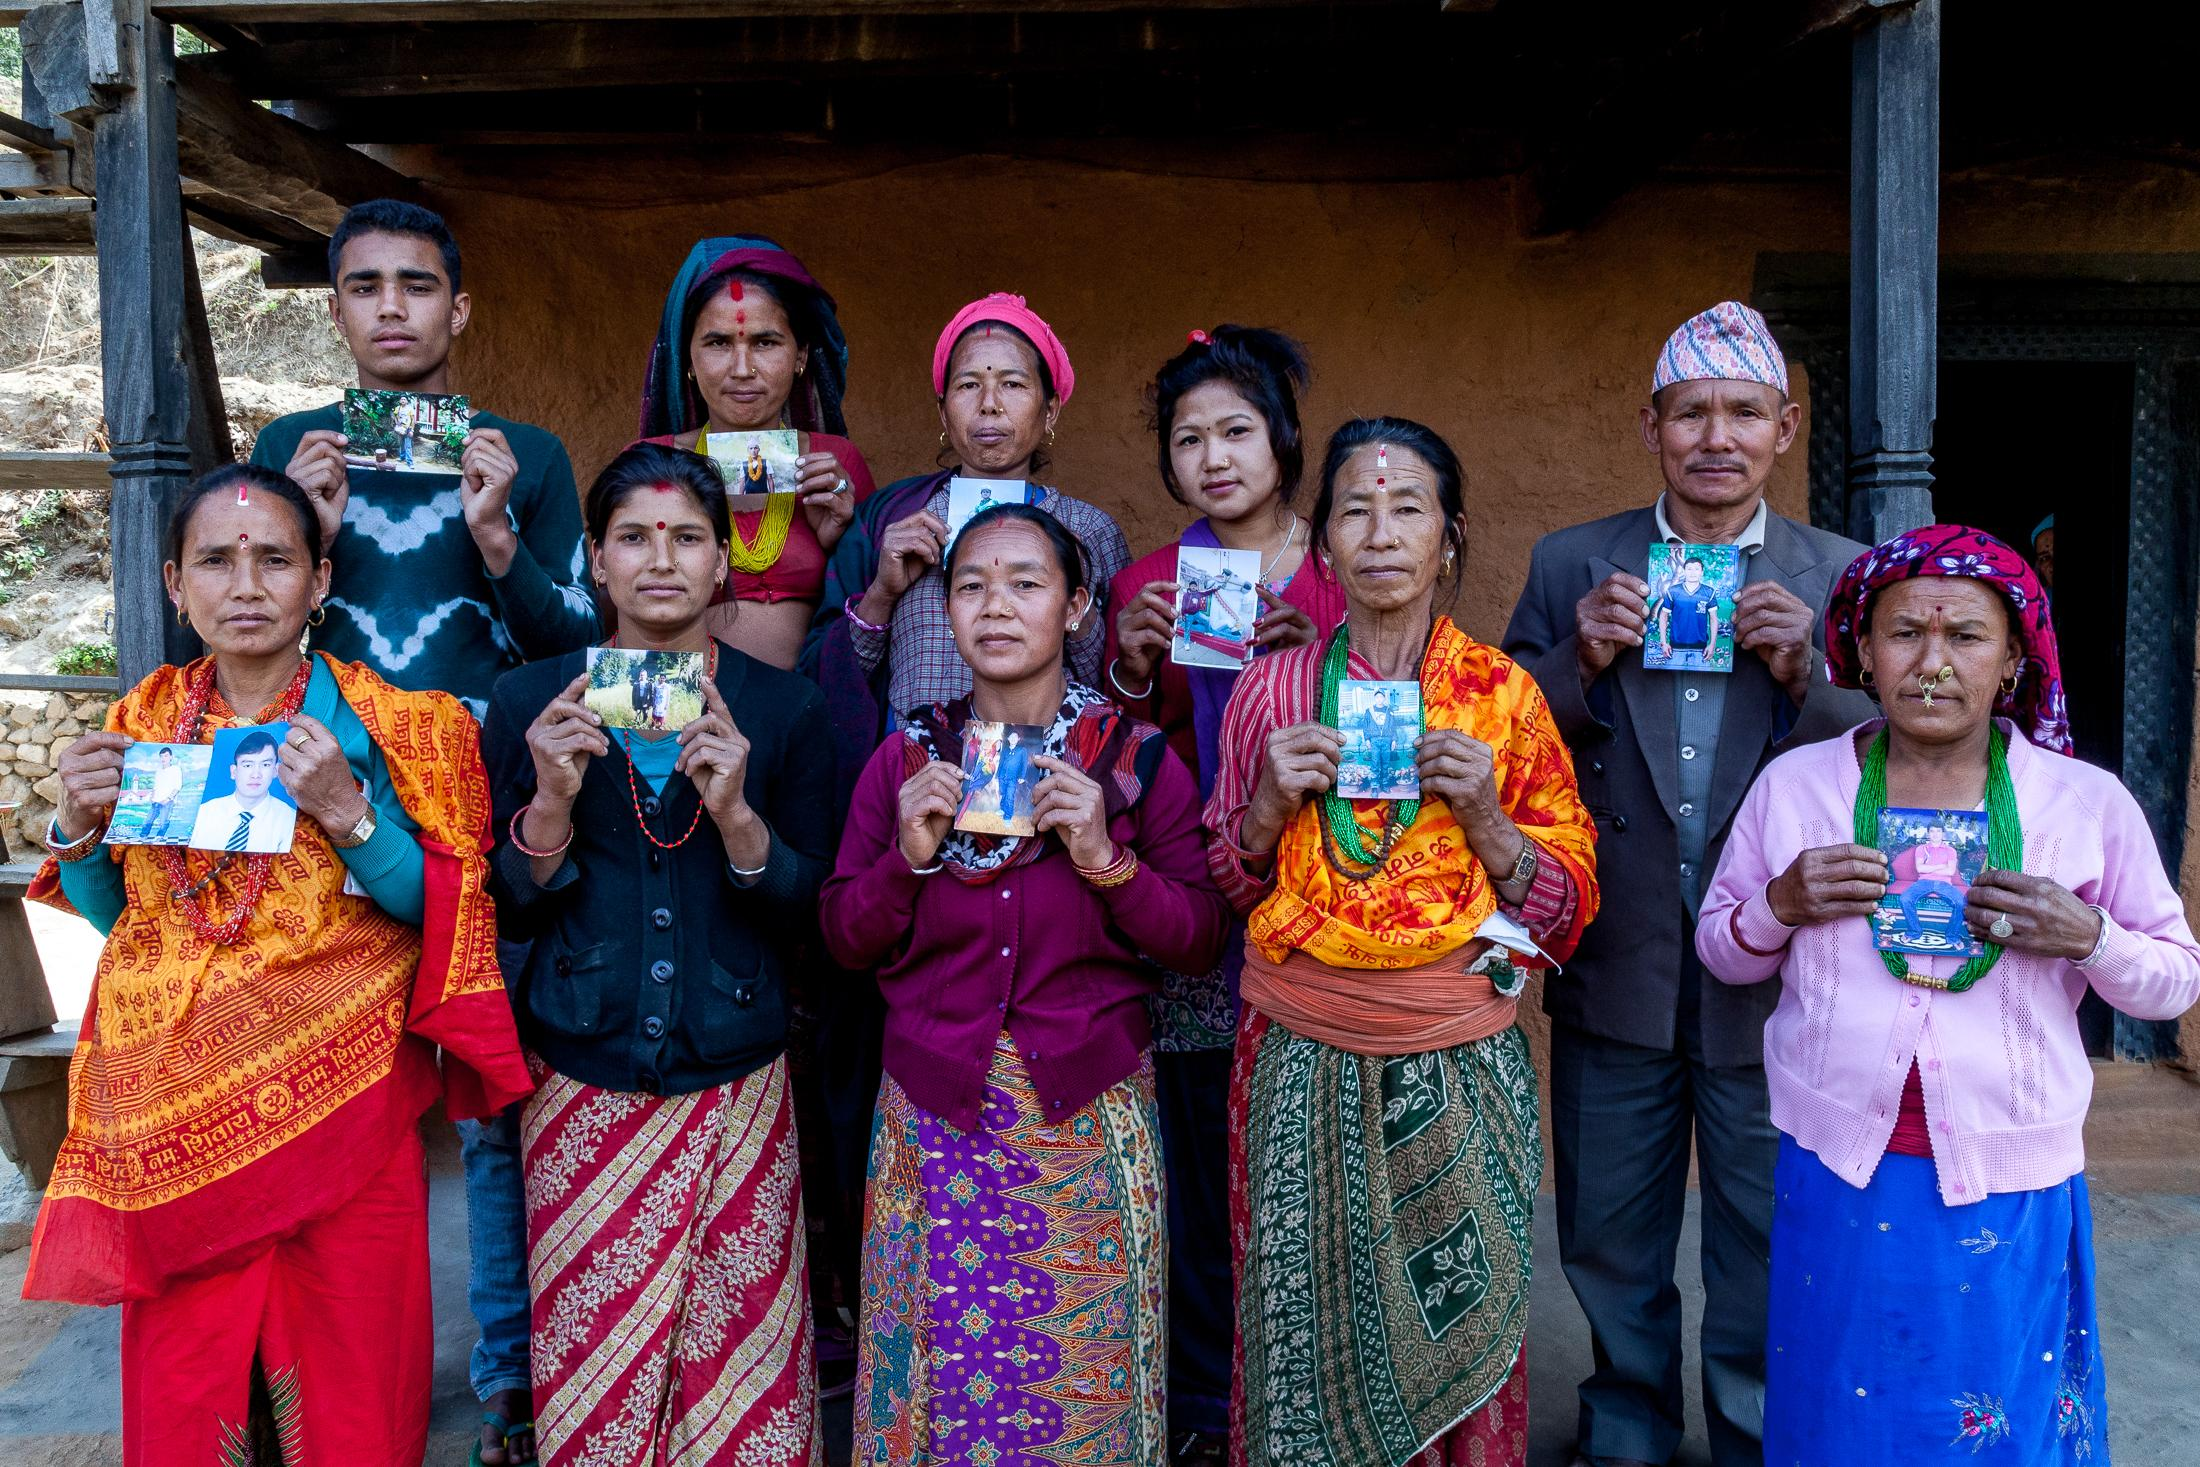 BATASE, NEPAL - FEBRUARY 28, 2015: A group of residents stands holding photos of relatives that have been forced to migrate to other countries for work due to the lack of employment opportunities in Batase, Nepal on February 28, 2015. Photo: © Omar Havana